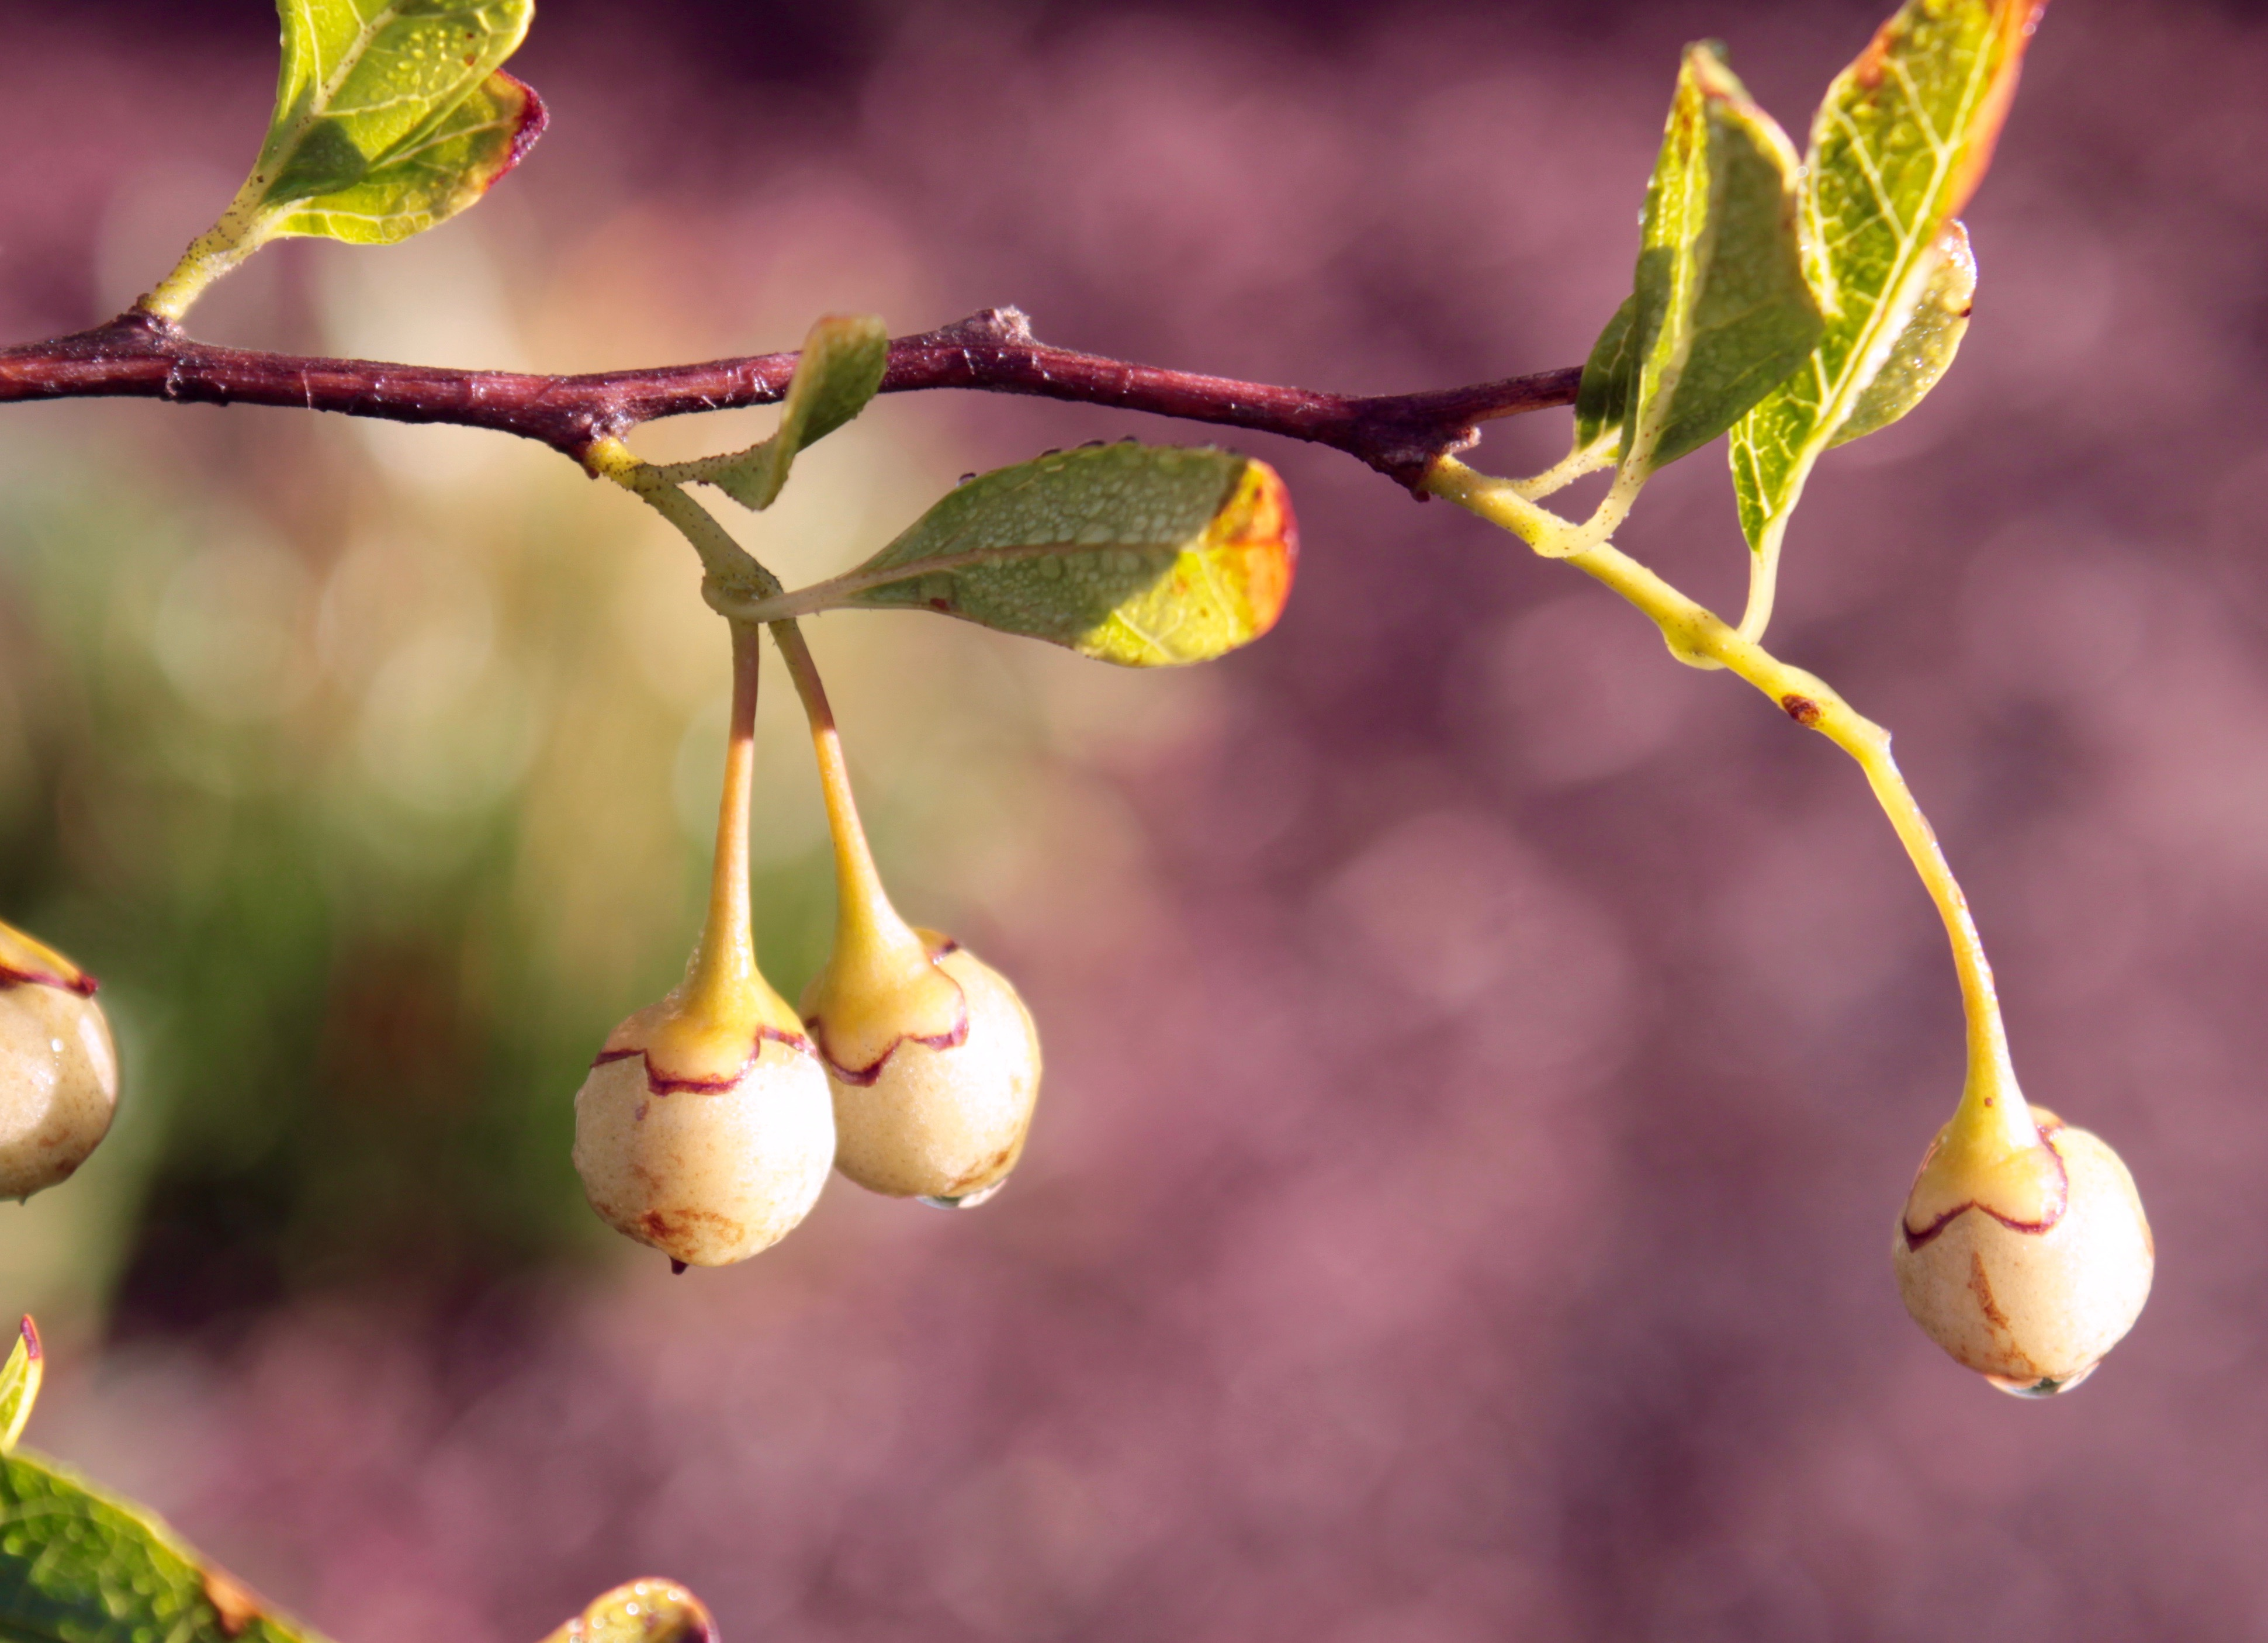 Best quality natural essential oils including Styrax - Styrax Resin for Perfumes, Incense, and Medicines, 100% Pure & Natural Styrax Absolute that can be used as Styrax incense & as an air freshener that can drive away snakes.